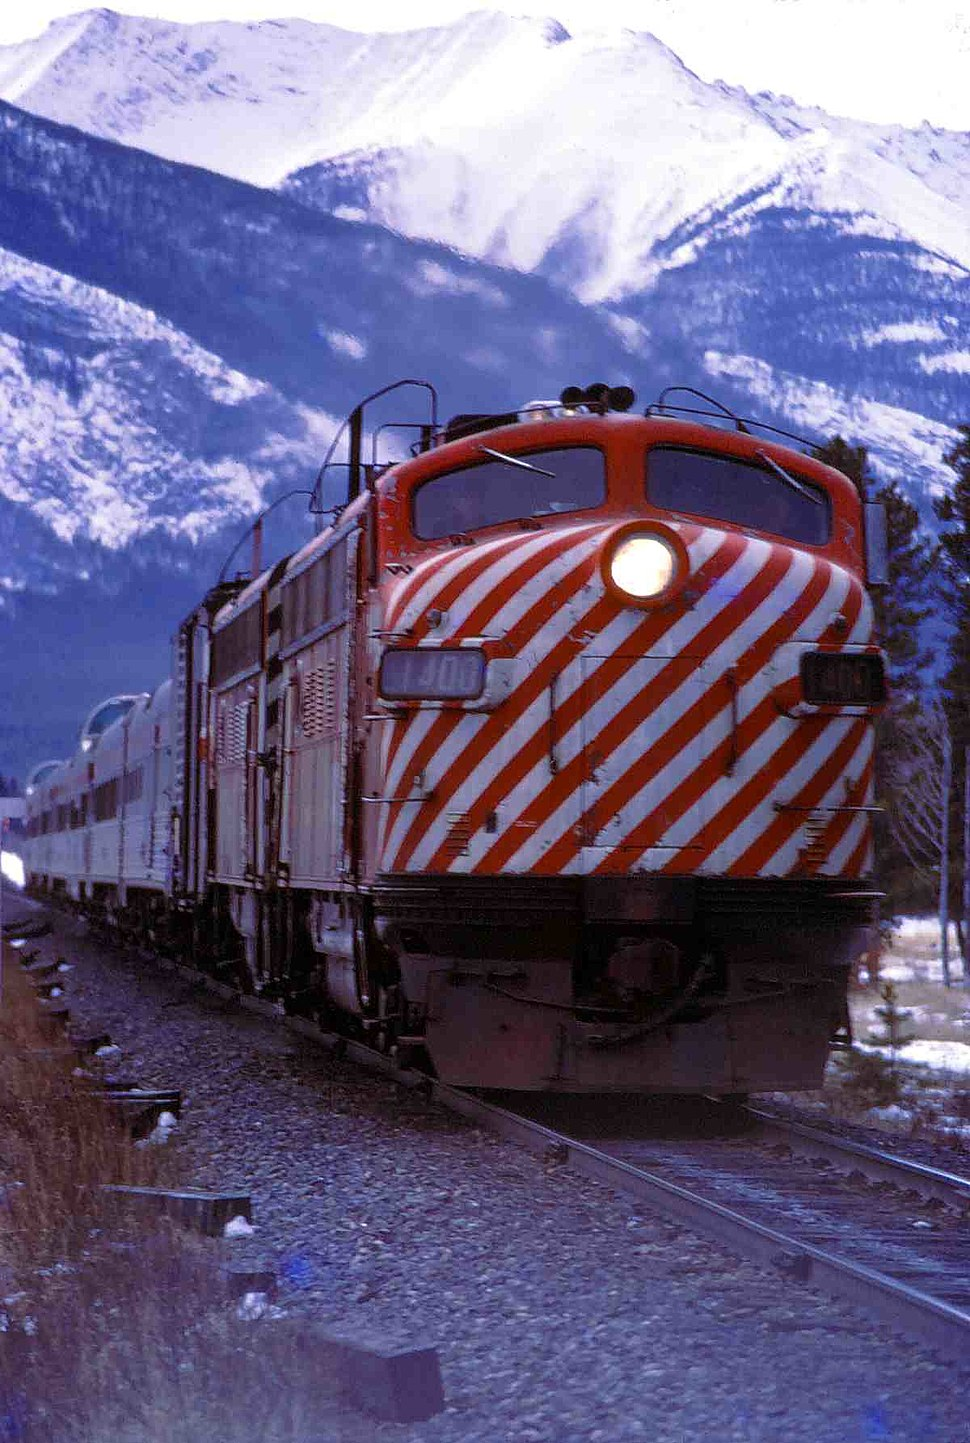 Canadian Pacific - Trans Canada passenger train